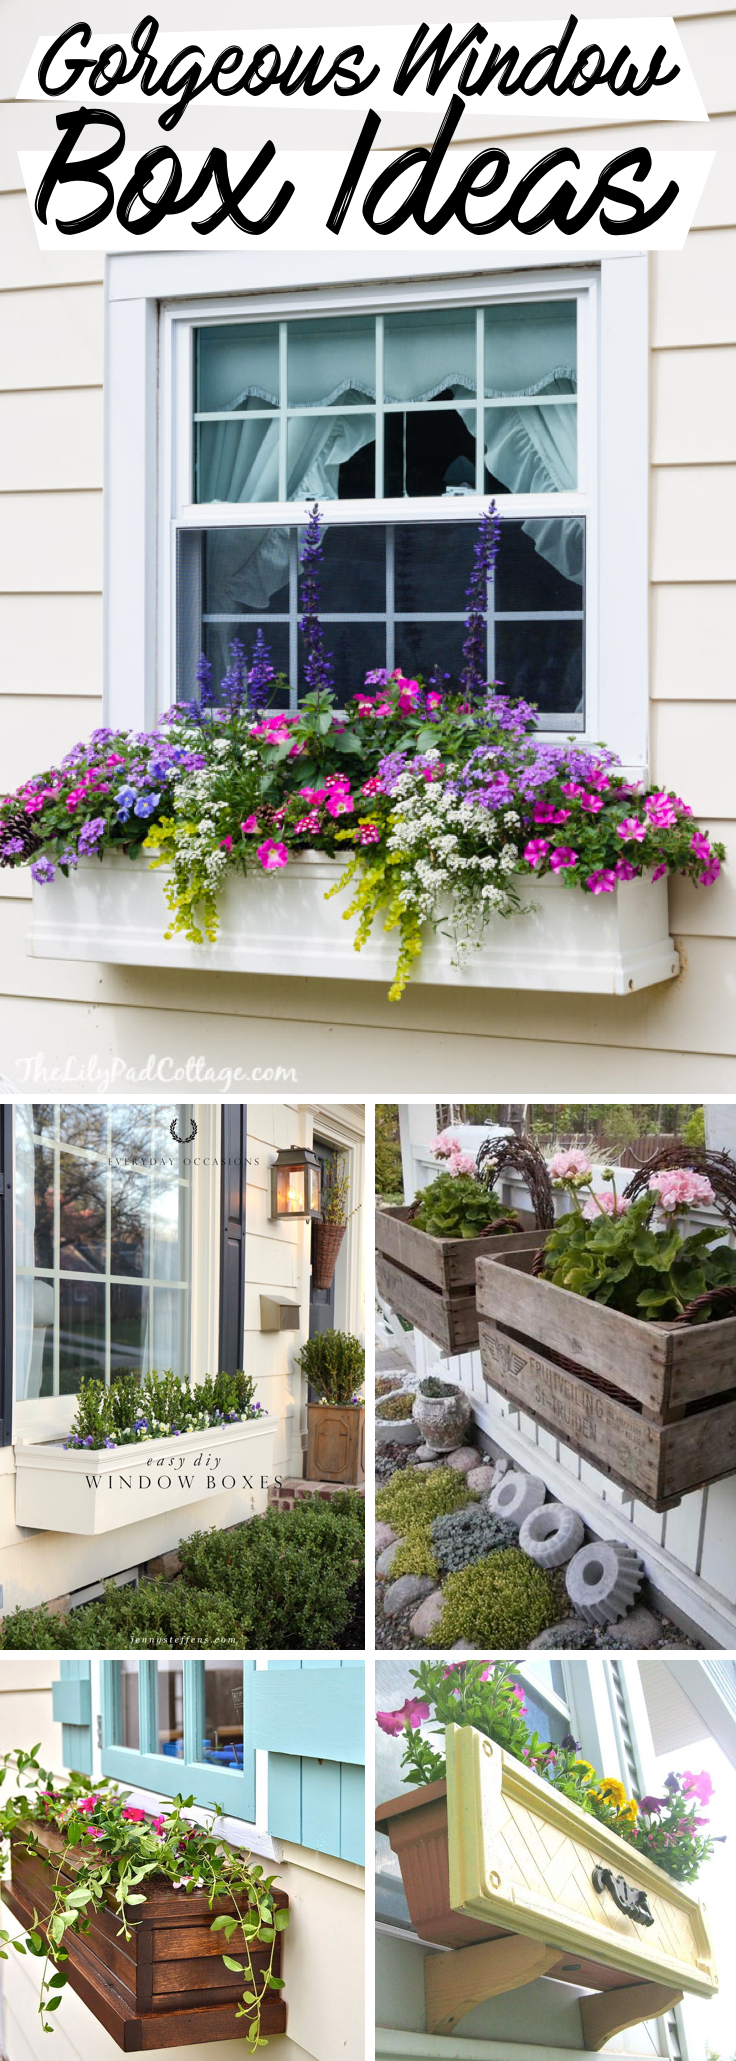 20 Gorgeous Window Box Ideas Adding Floral Magnificence To